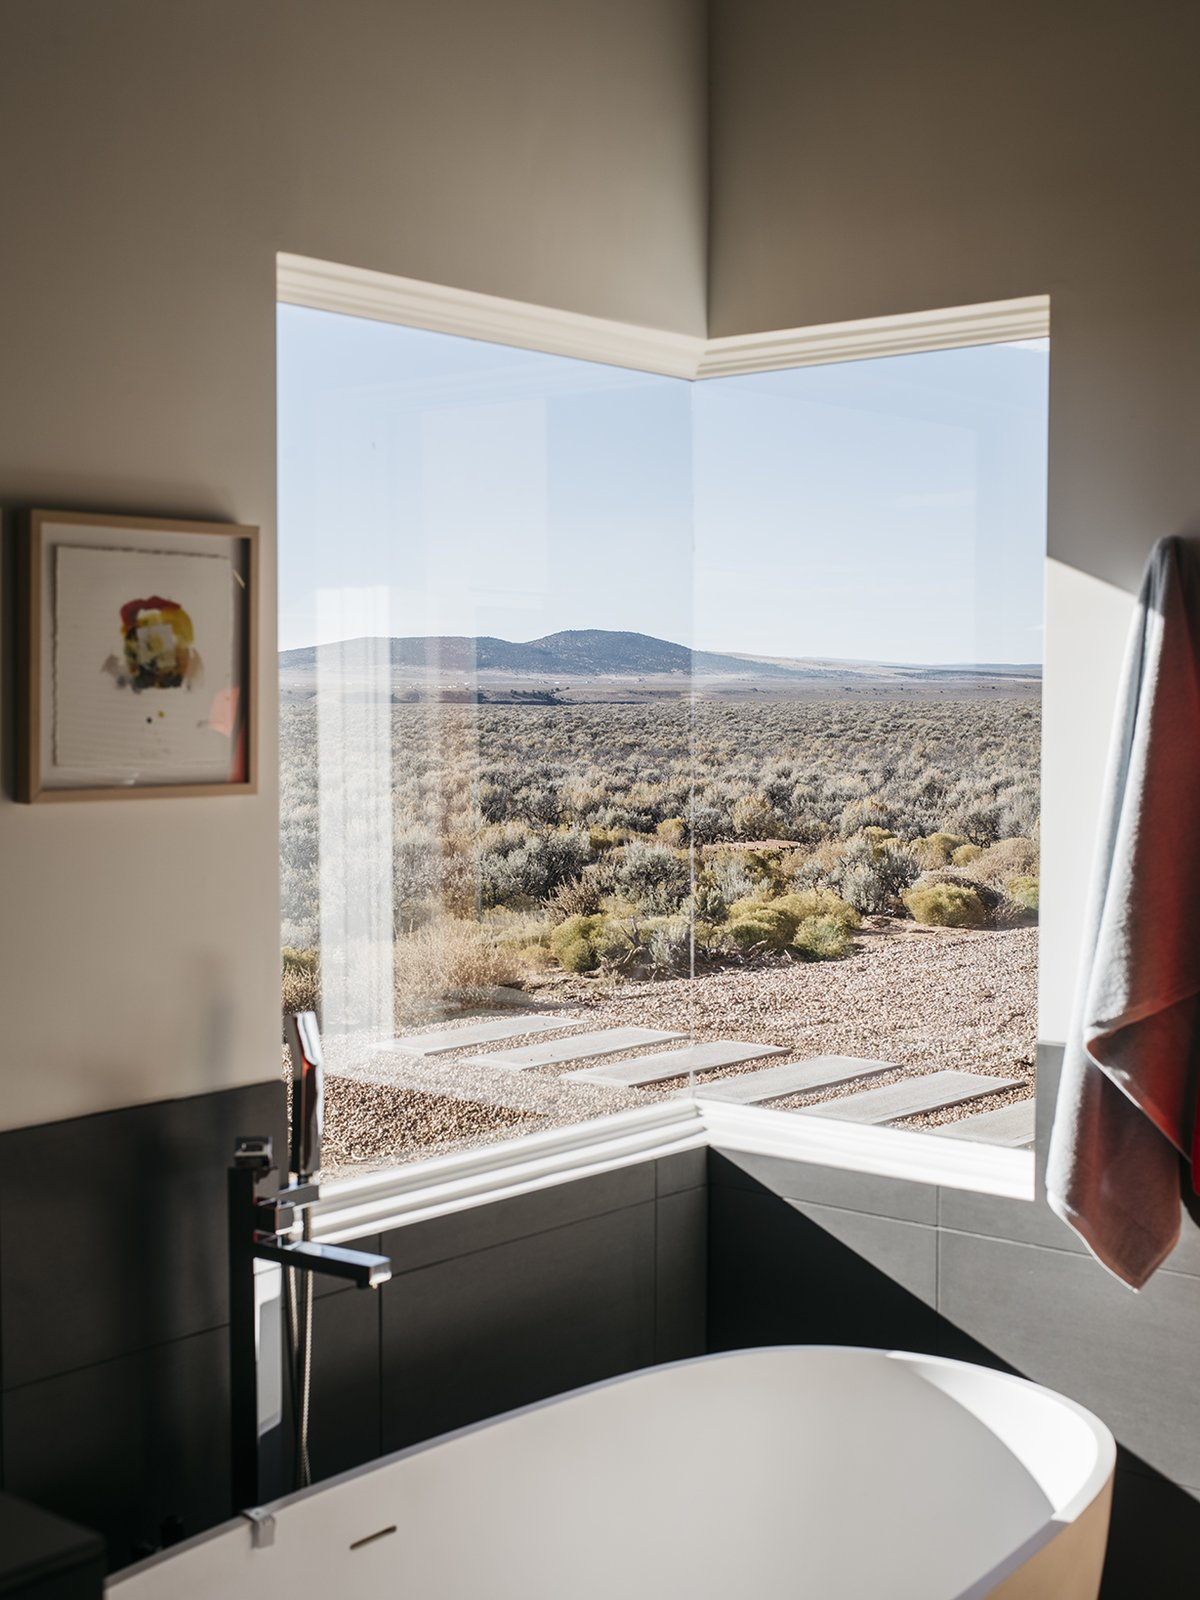 the-master-bathroom-features-one-of-two-corner-windows-in-the-house-at-night-when-i-take-a-bath-i-can-see-the-moon-and-the-stars-says-lois-taos-new-mexico-dwell-magazine-july-august-2017.jpg